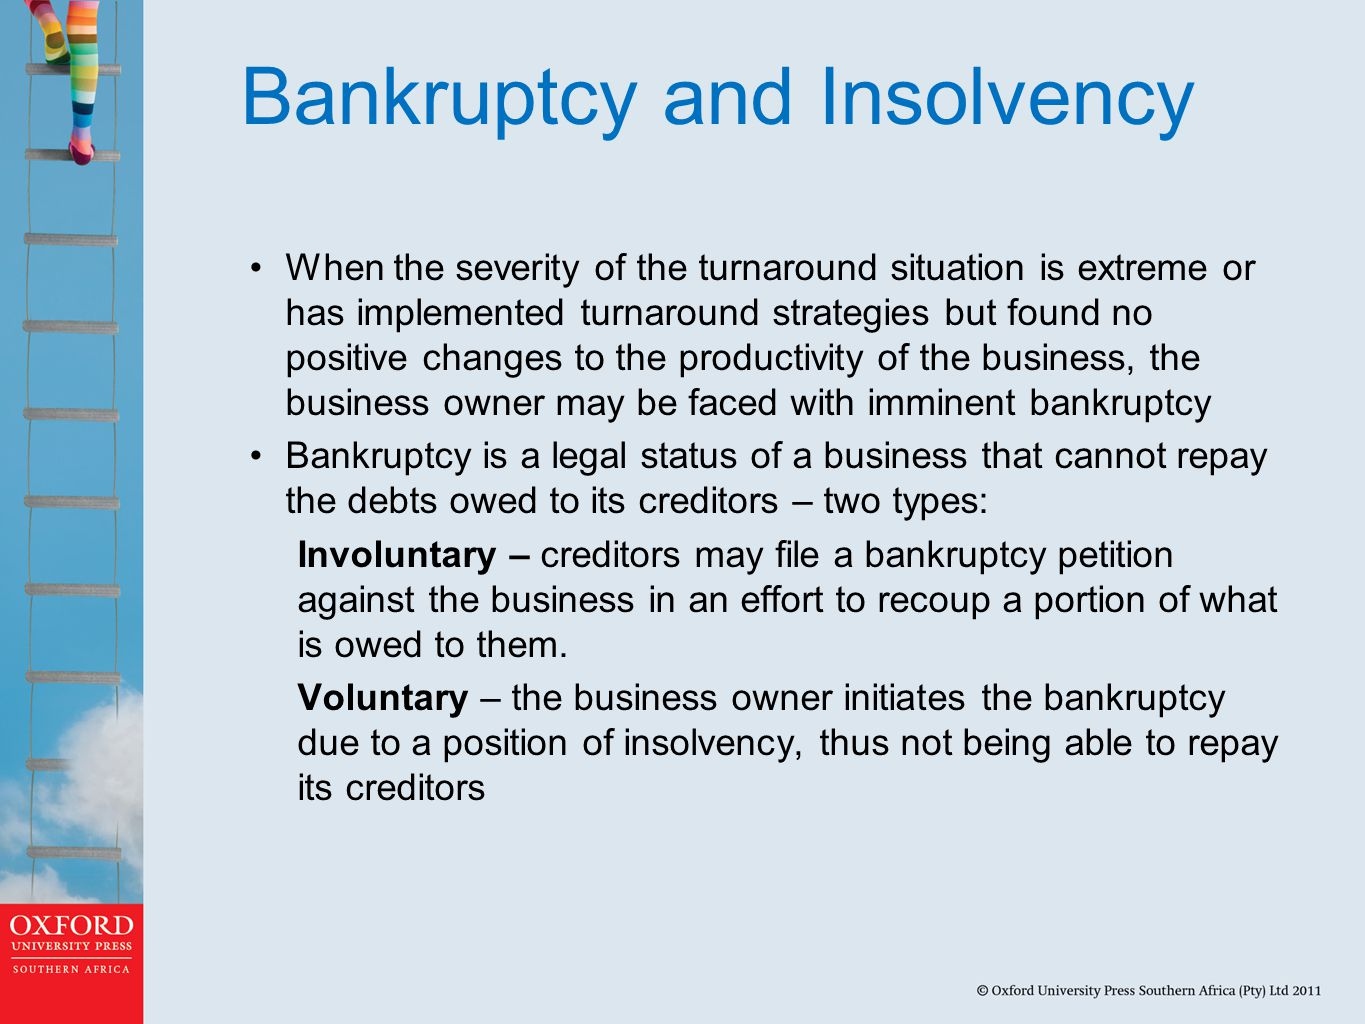 Bankruptcy and Insolvency When the severity of the turnaround situation is extreme or has implemented turnaround strategies but found no positive changes to the productivity of the business, the business owner may be faced with imminent bankruptcy Bankruptcy is a legal status of a business that cannot repay the debts owed to its creditors – two types: Involuntary – creditors may file a bankruptcy petition against the business in an effort to recoup a portion of what is owed to them.